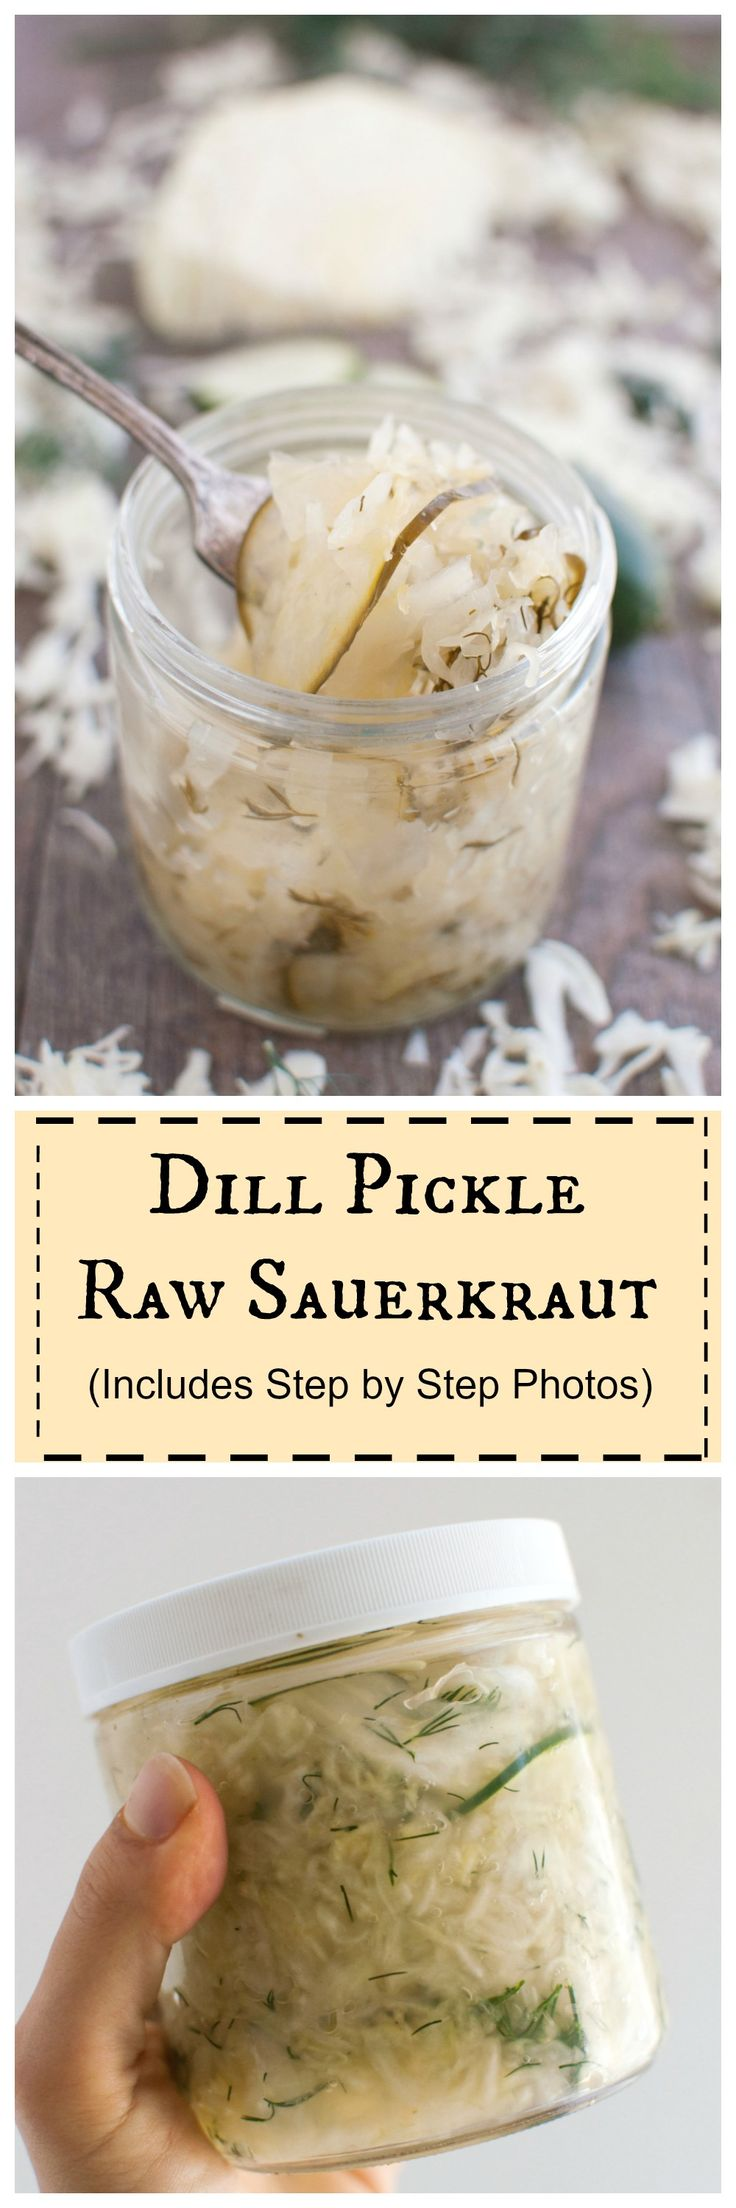 Dill Pickle Raw Sauerkraut- improve your gut heal #probiotic #vegan #paleo…